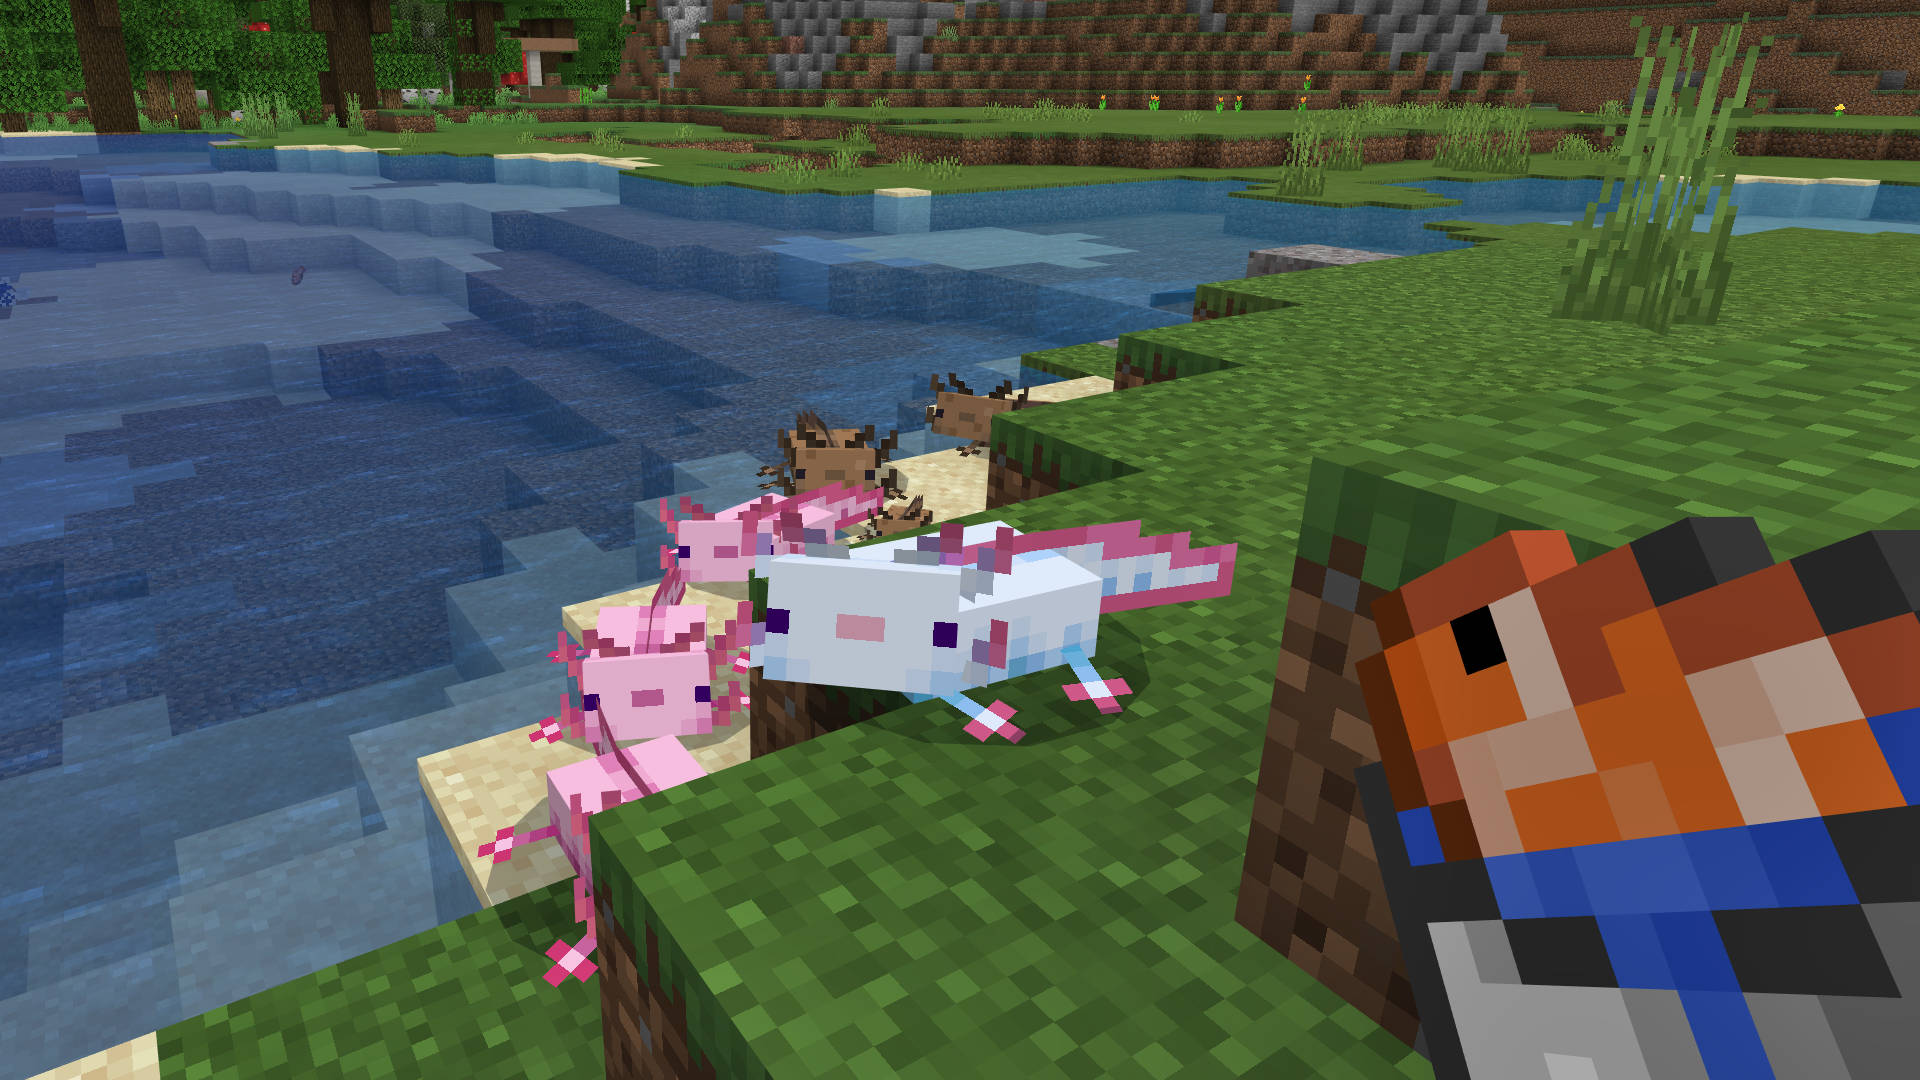 A group of Minecraft Axolotls lured in by the promise of a tropical fish meal.